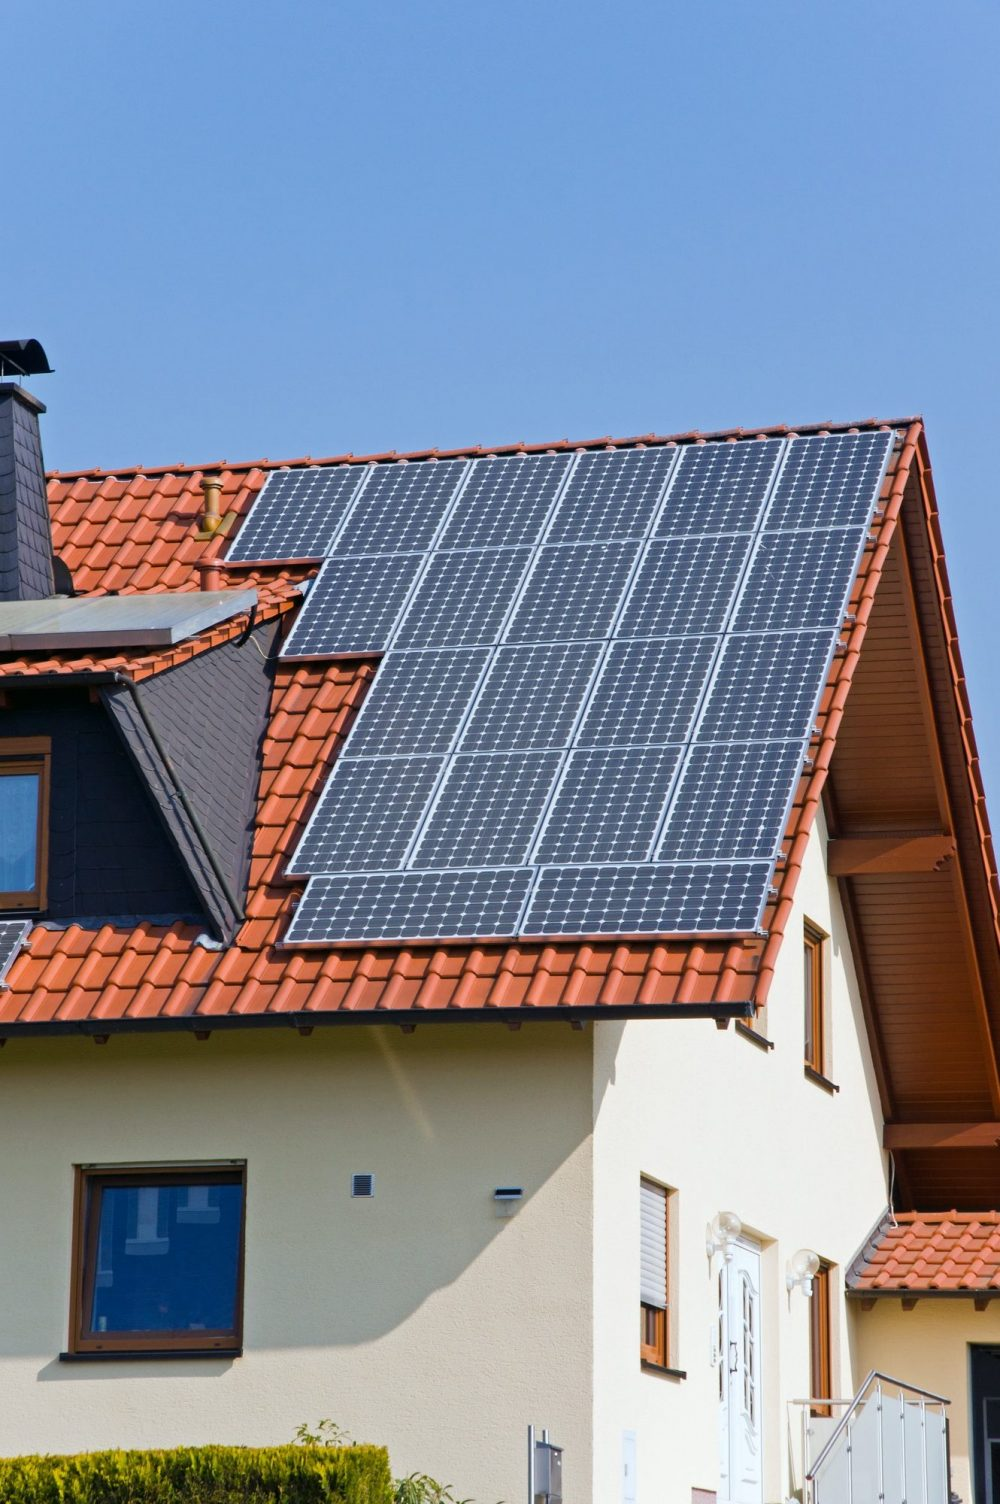 roof-with-solar-panels-e1617069579544.jpg